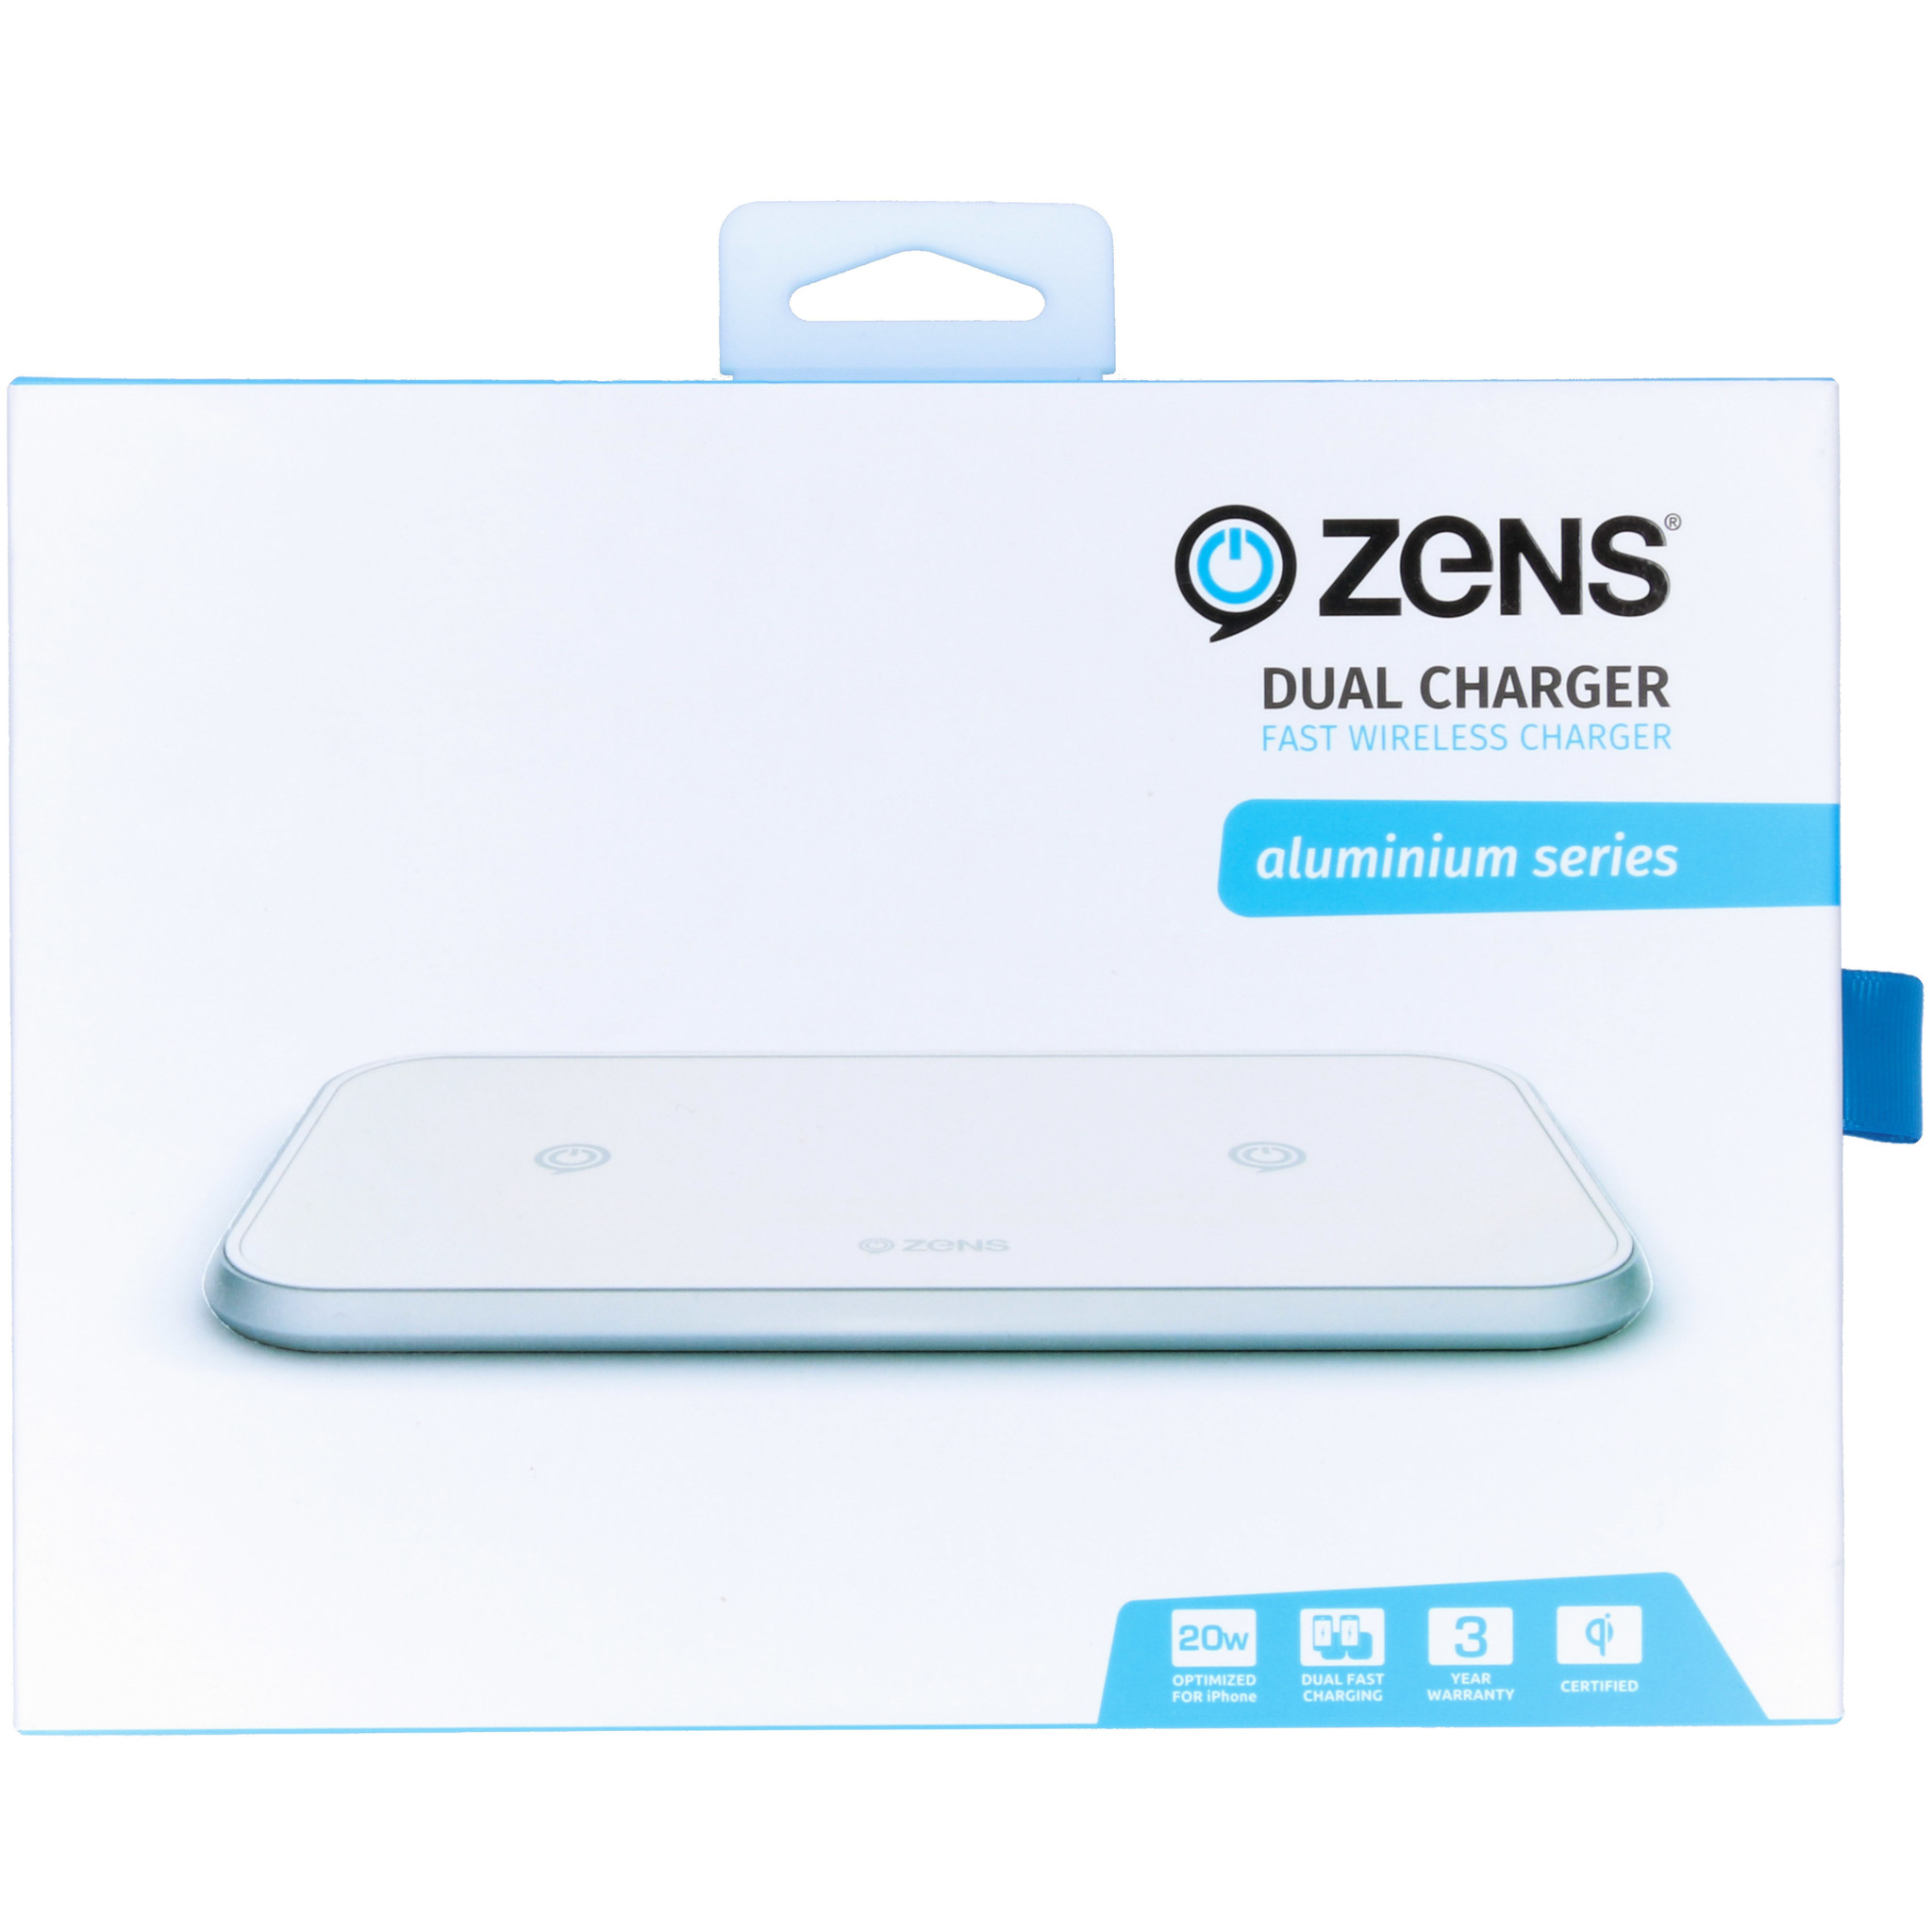 Zens Dual Fast Wireless Charger - 20 Watt - Aluminium Series